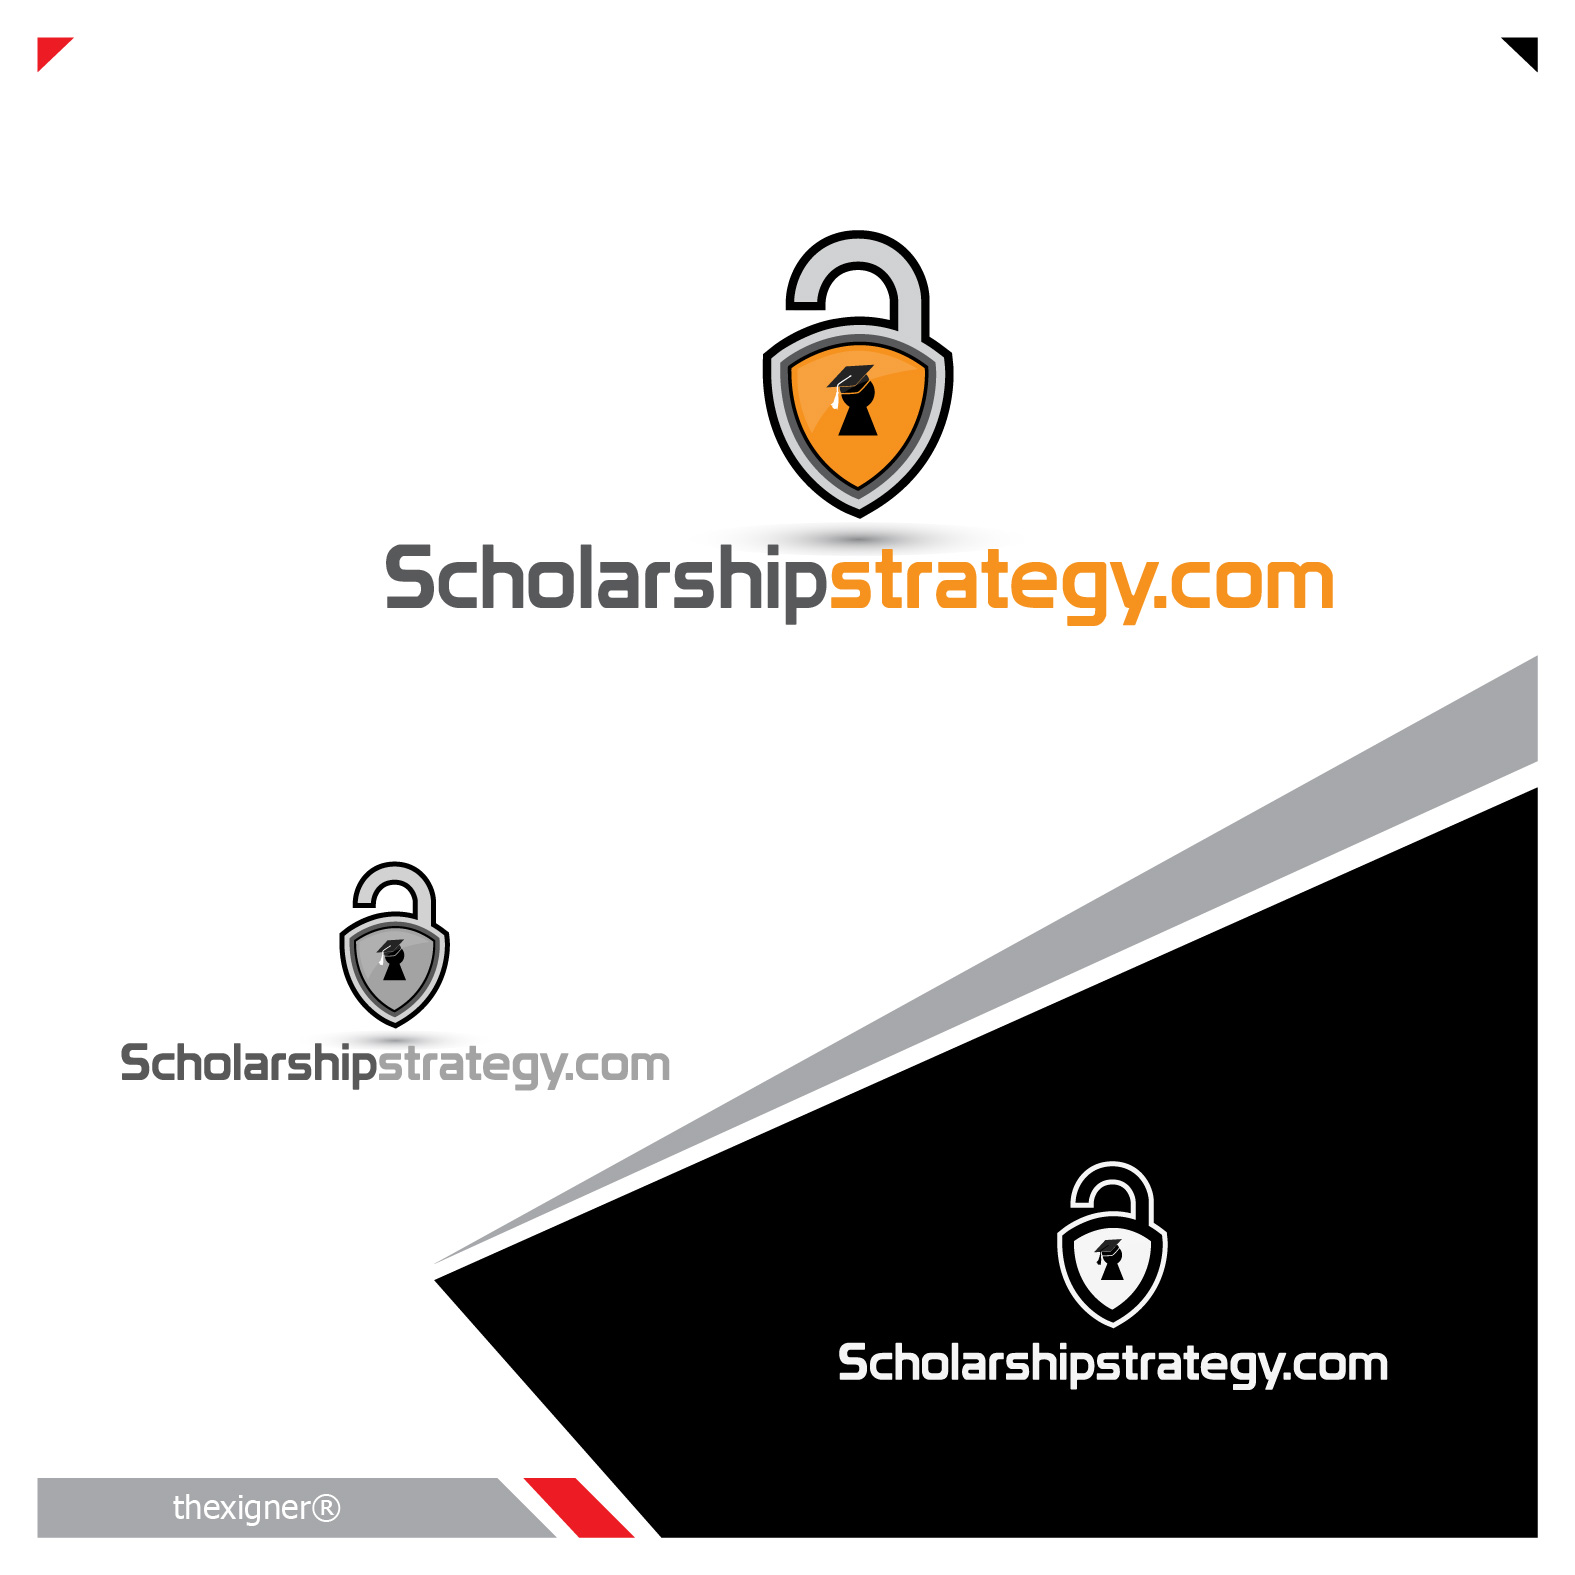 Logo Design by lagalag - Entry No. 76 in the Logo Design Contest Captivating Logo Design for Scholarshipstrategy.com.